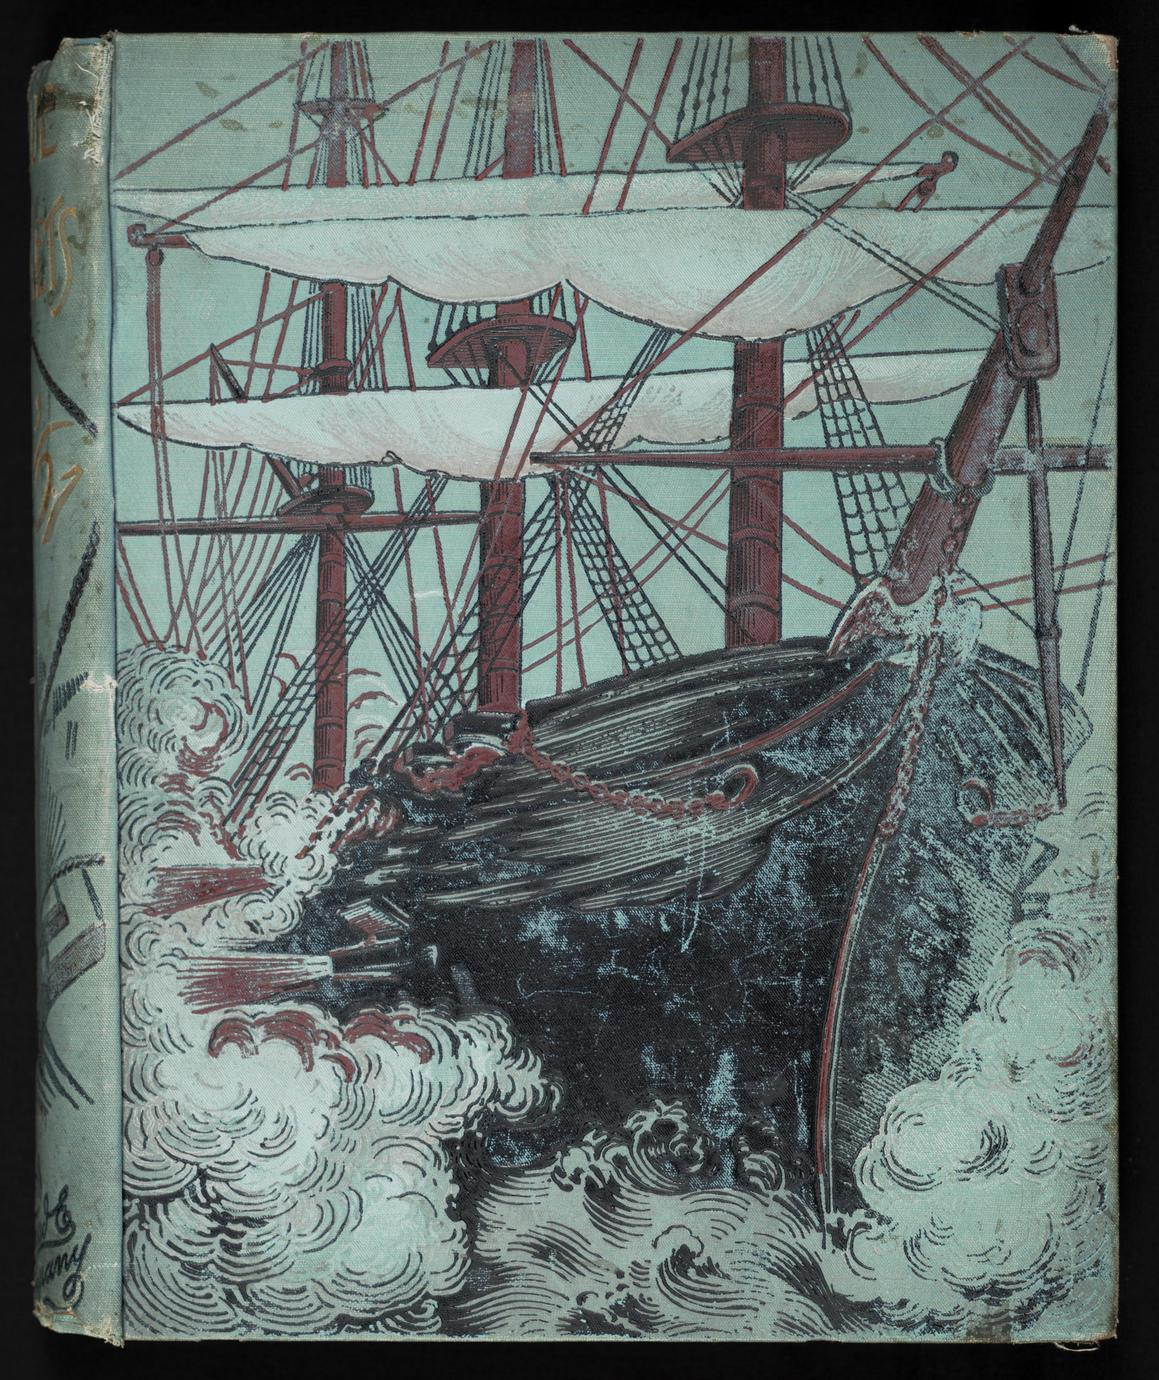 Blue jackets of '61 : a history of the navy in the war of secession (1 of 2)